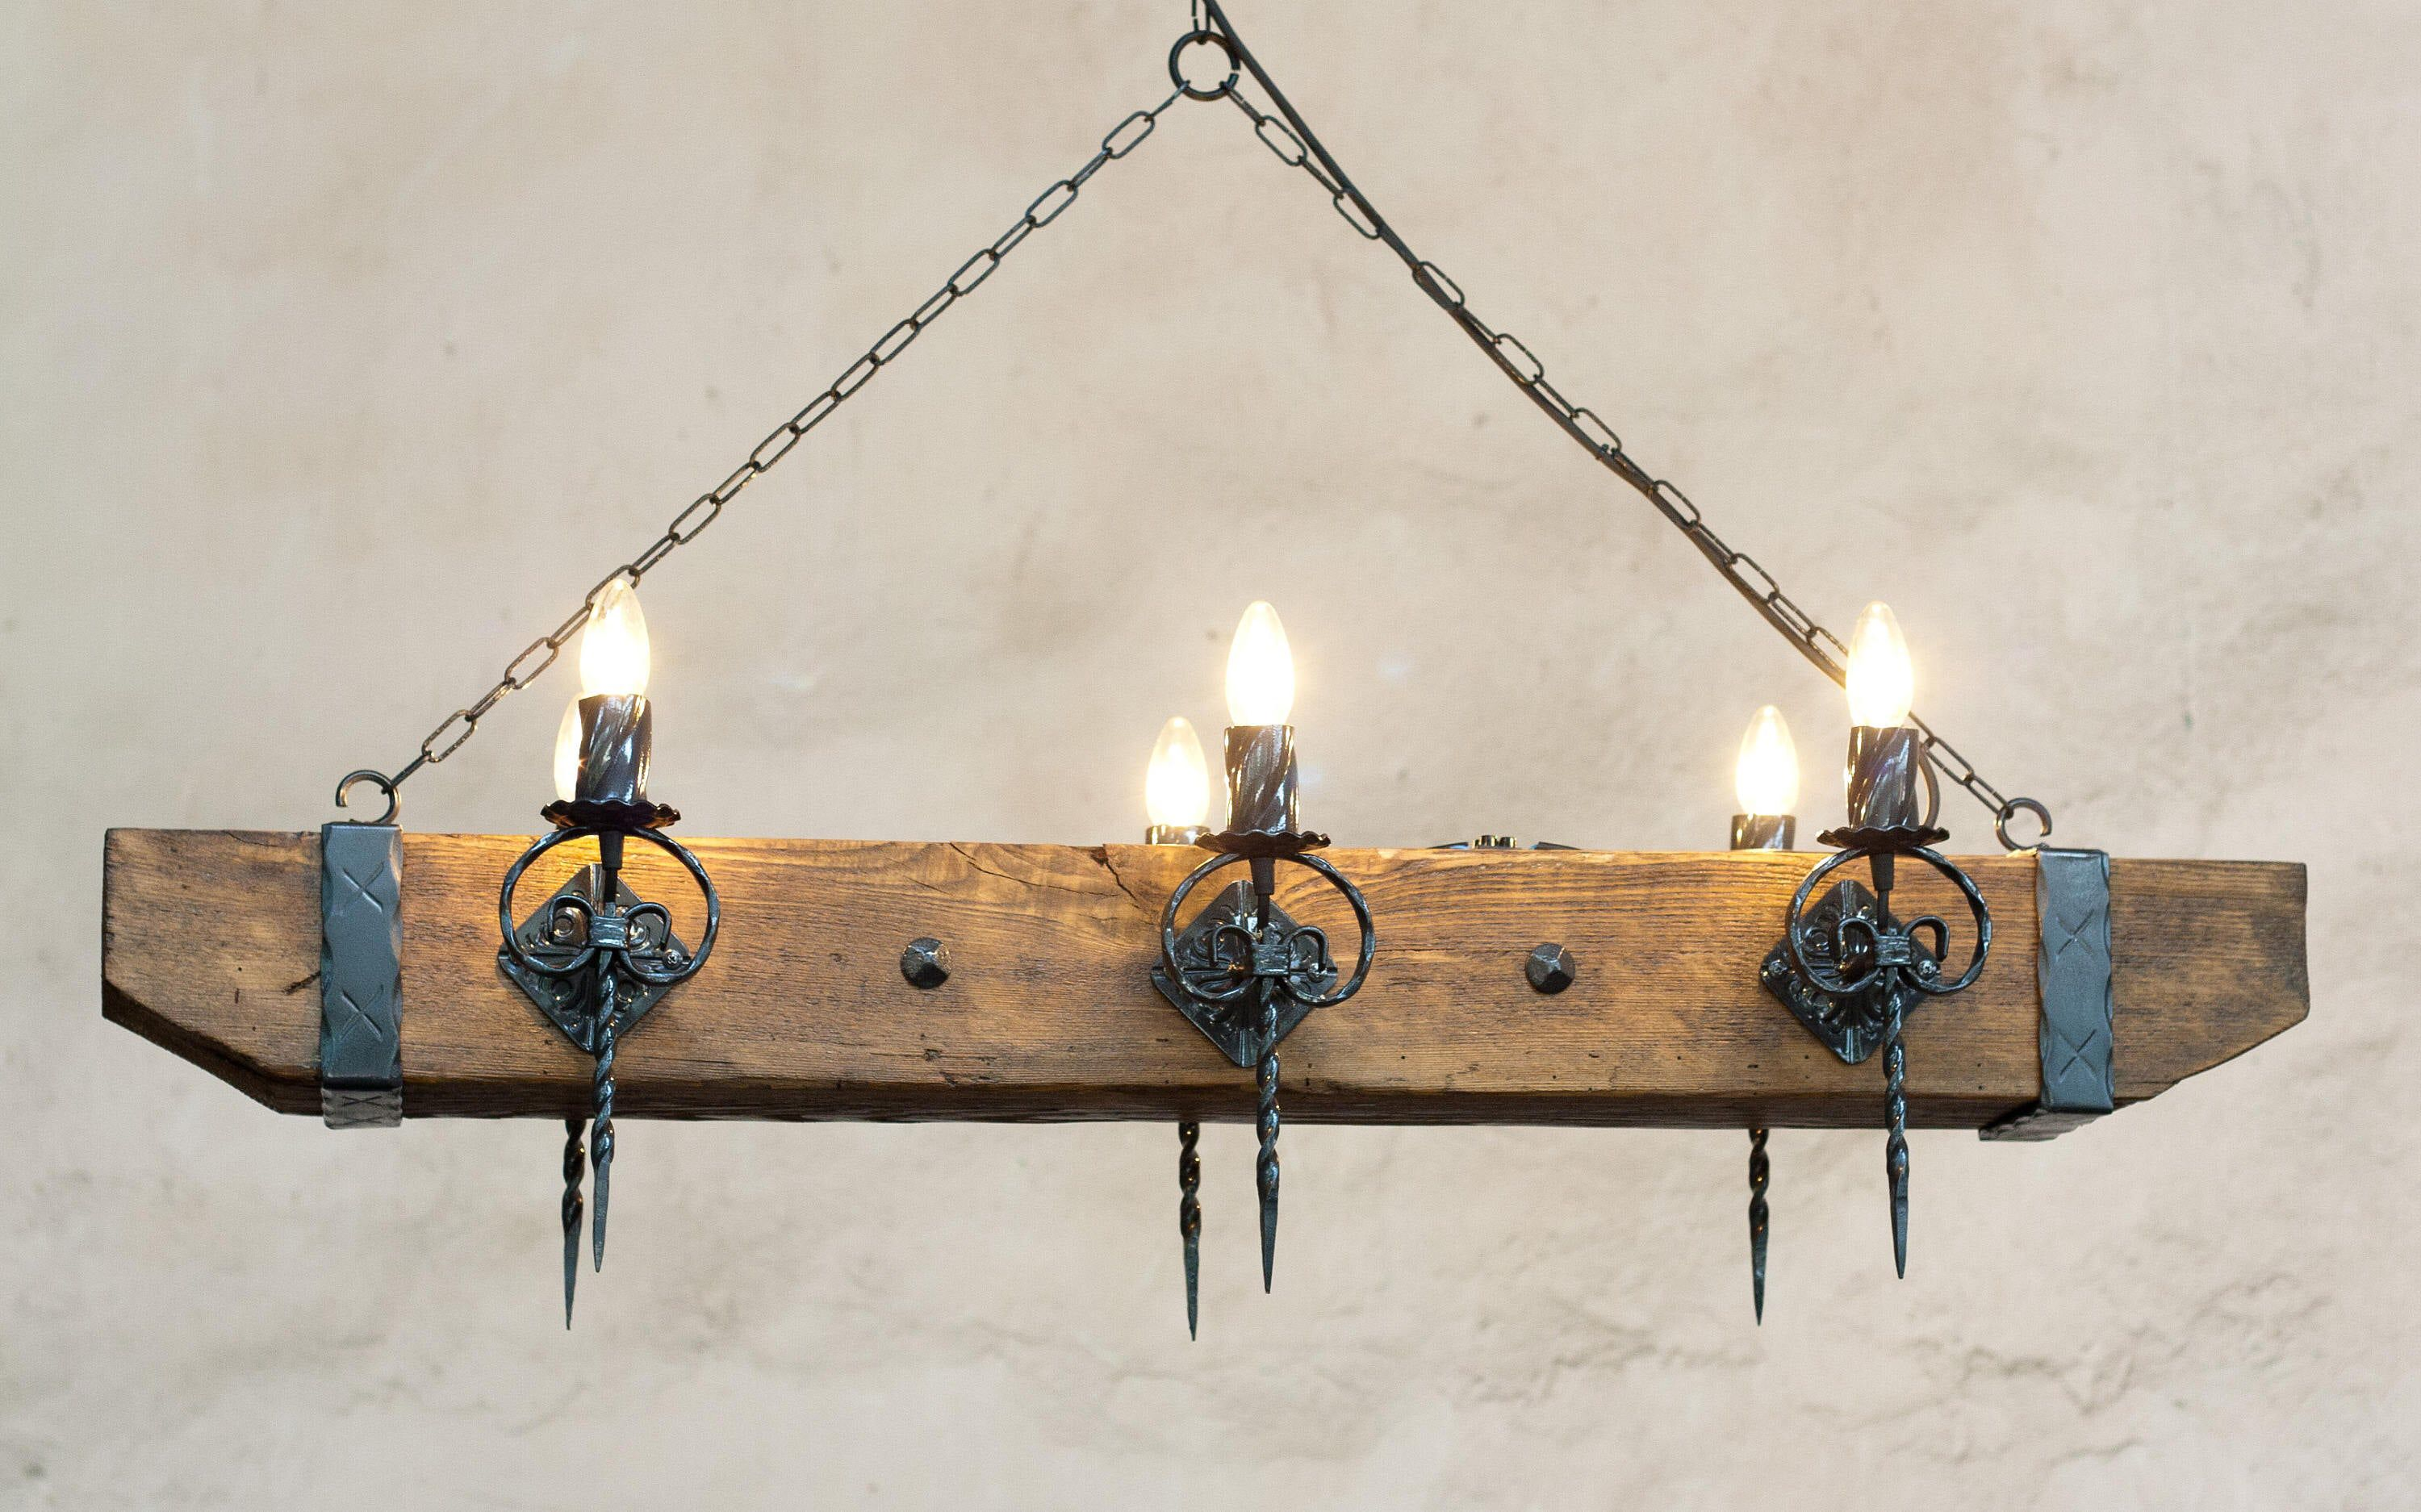 Wood Beam And Wrought Iron Chandelier Six Light Chandelier Etsy Wrought Iron Chandeliers Iron Chandeliers Rustic Ceiling Lights Iron and wood chandelier